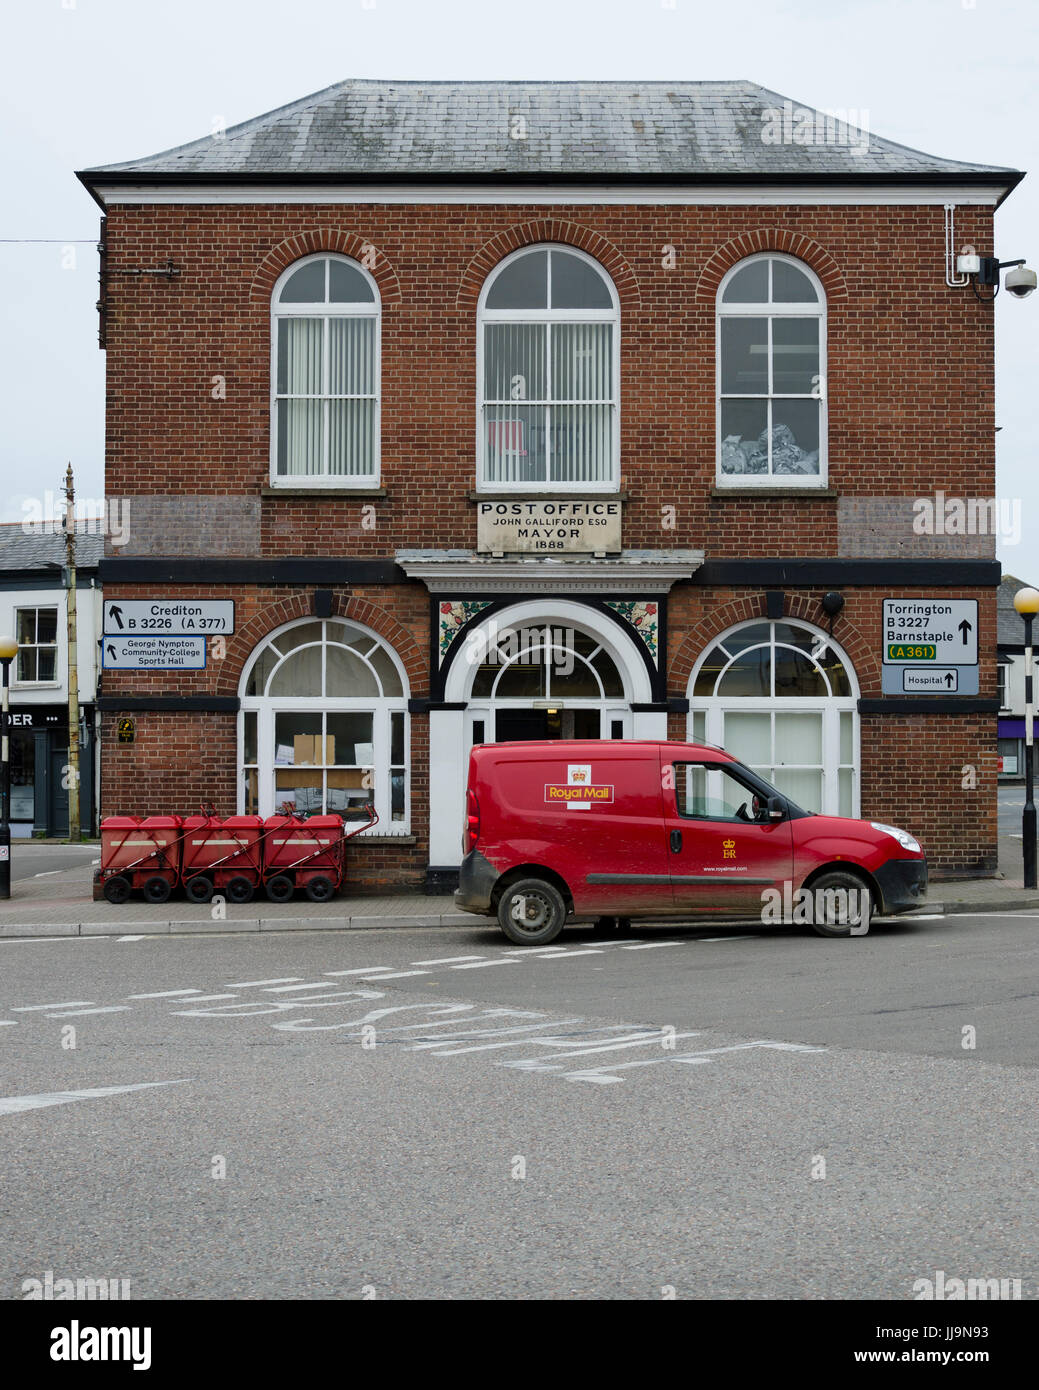 Post office and Royal Mail van, South Molton, Devon - Stock Image